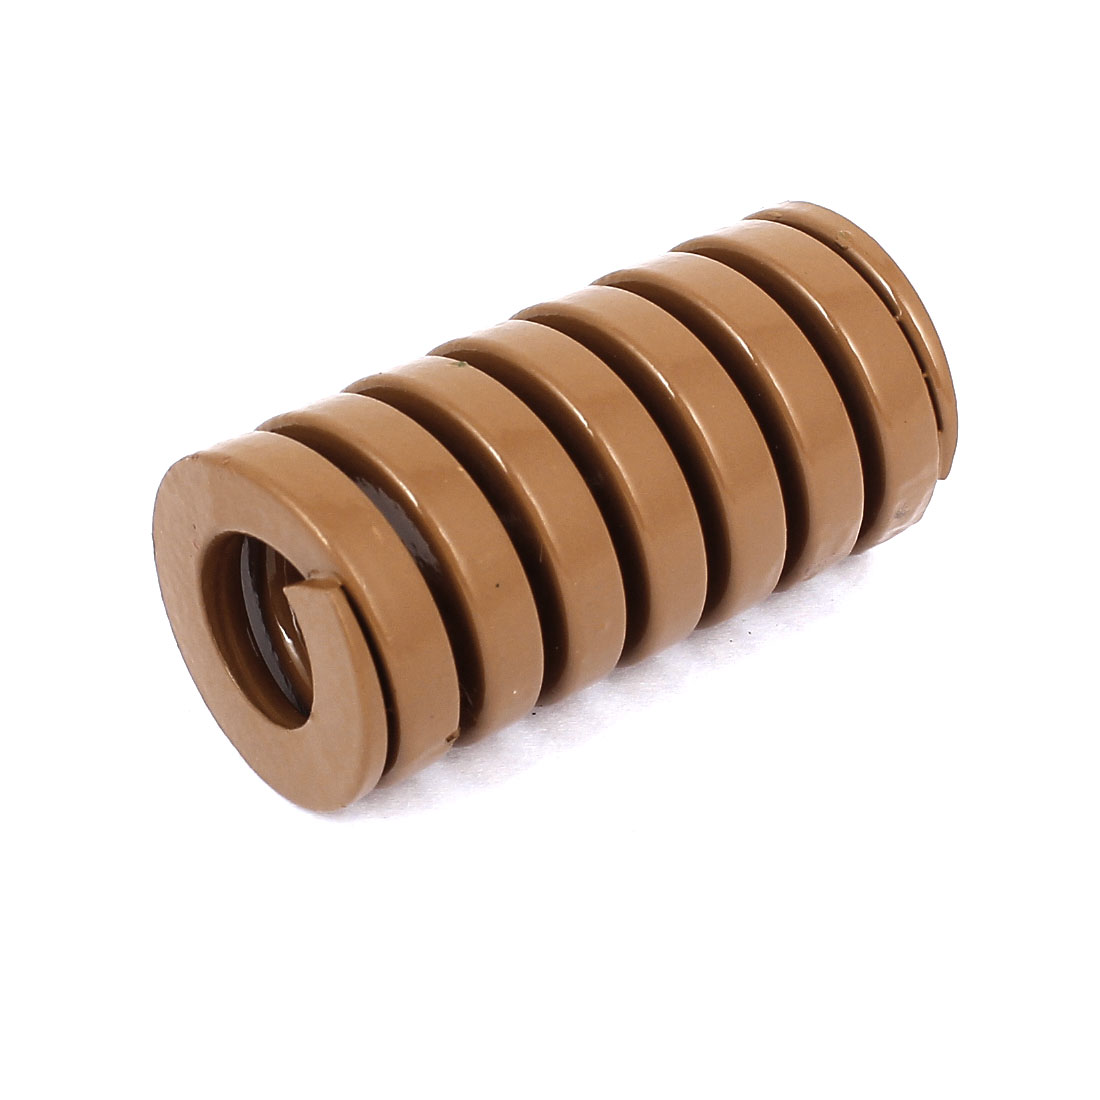 30mm OD 60mm Long Heavy Load Coil Stamping Compression Mold Die Spring Brown